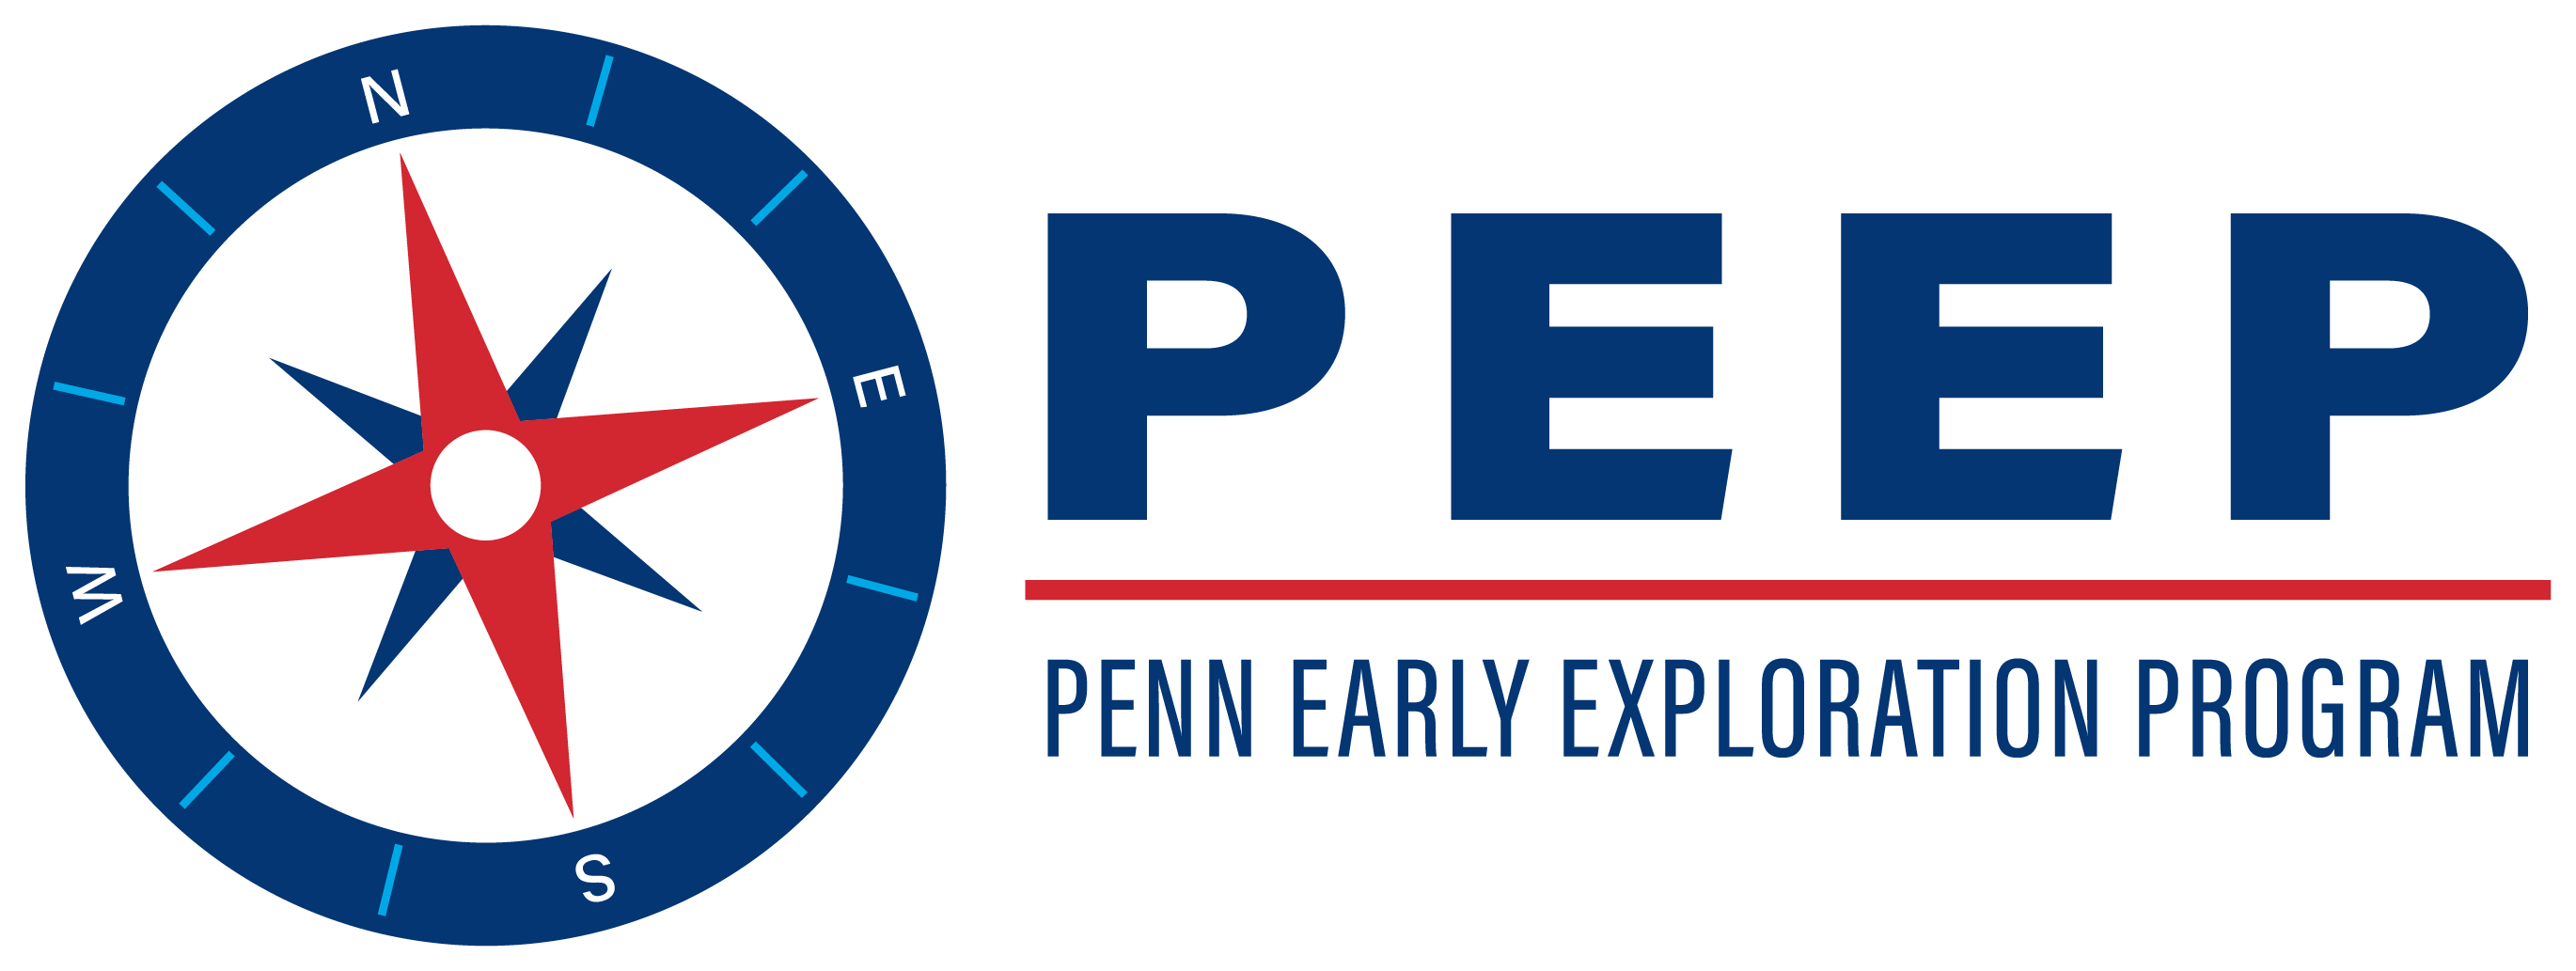 Penn Early Exploration Program